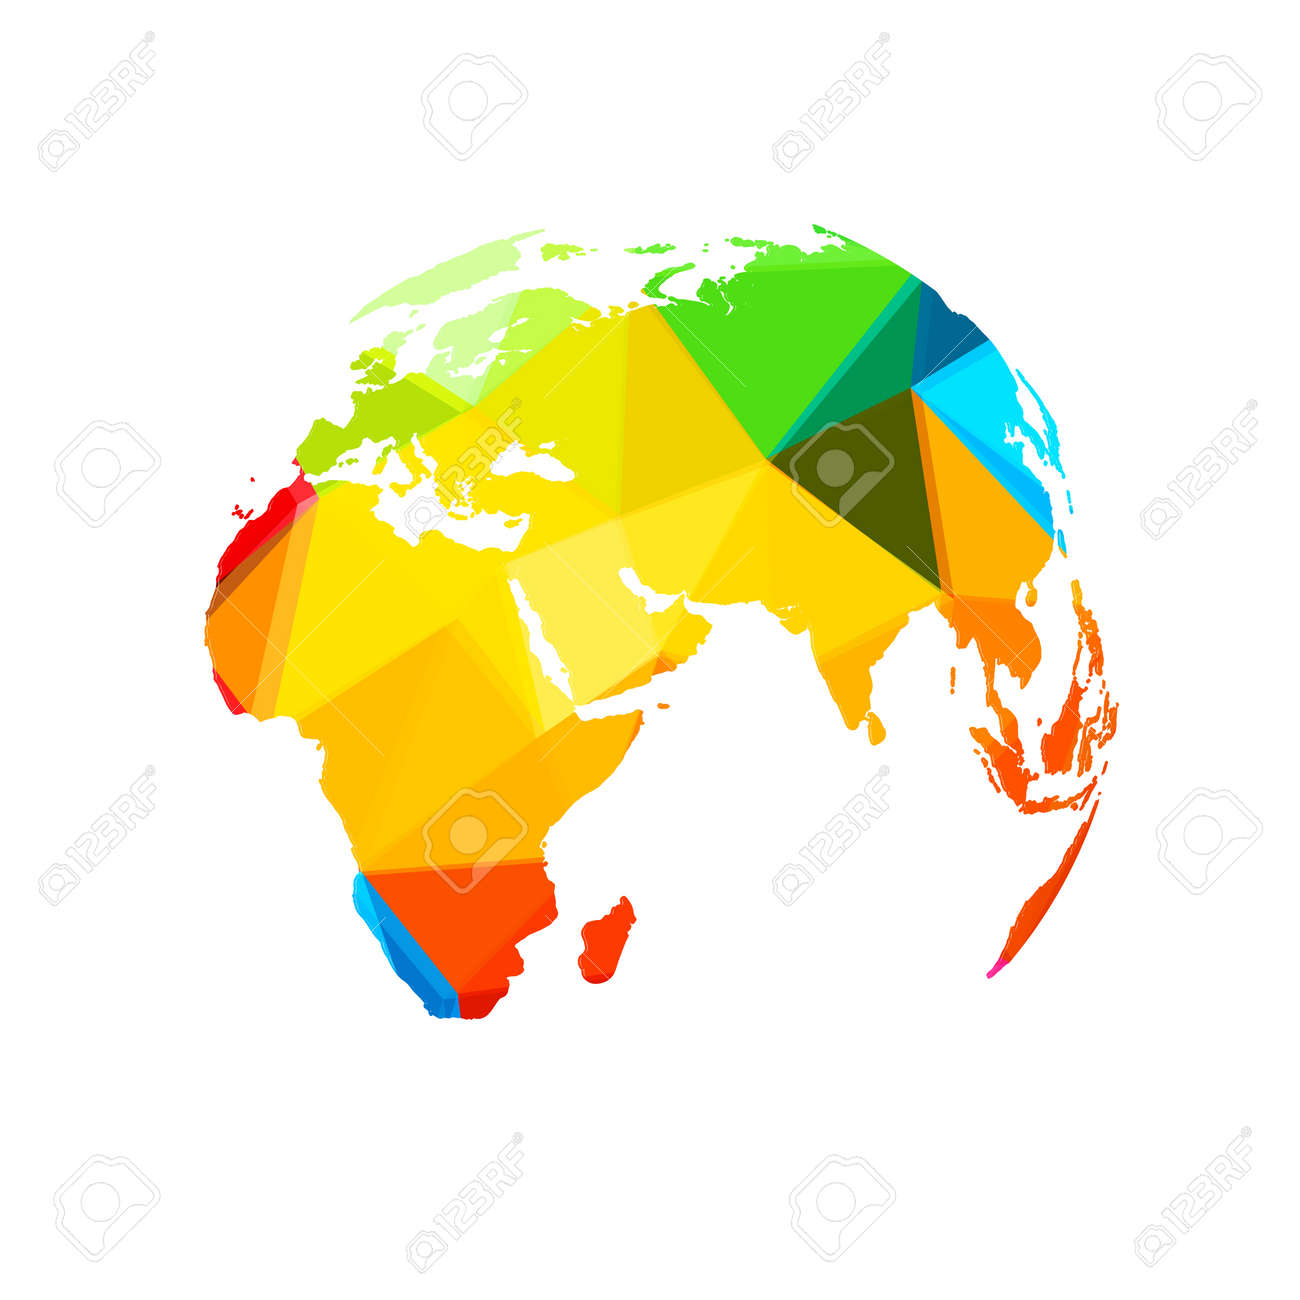 Polygon world map globe template easy all editable royalty free polygon world map globe template easy all editable stock vector 66063643 gumiabroncs Choice Image